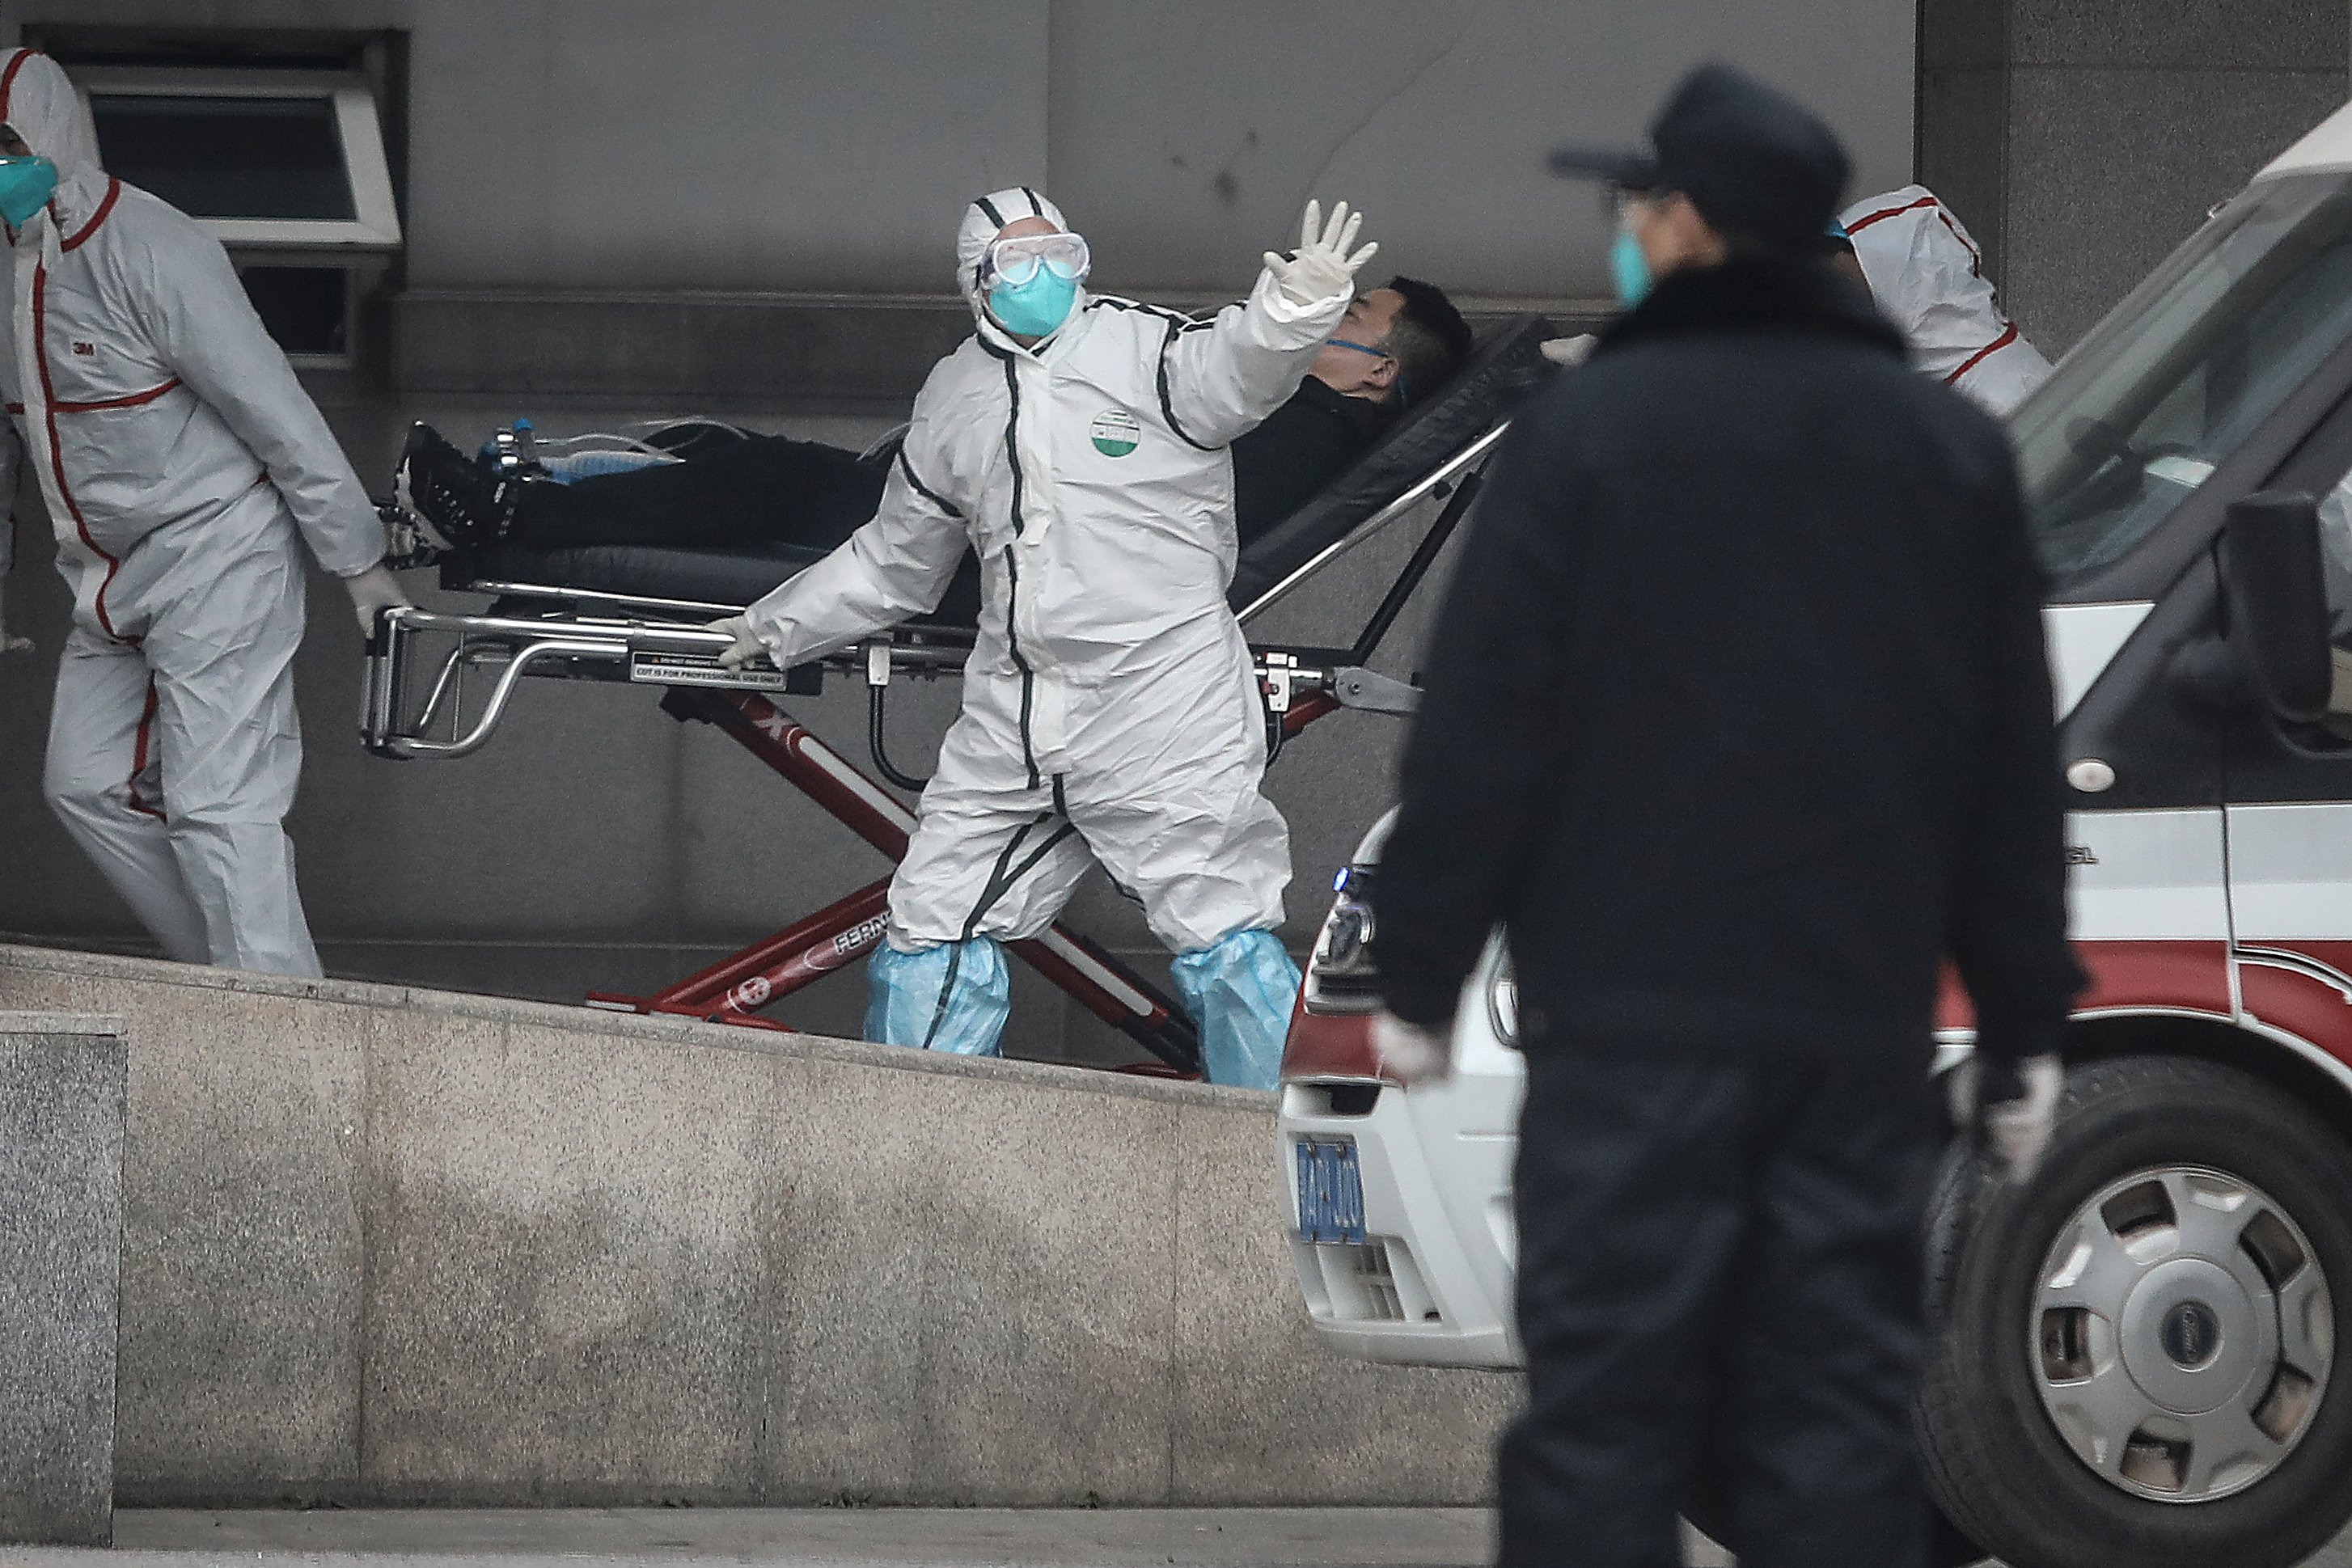 Medical staff transfer patients to Jin Yintan hospital on January 17, 2020 in Wuhan, Hubei, China. Local authorities have confirmed that a second person in the city has died. (Getty Images)